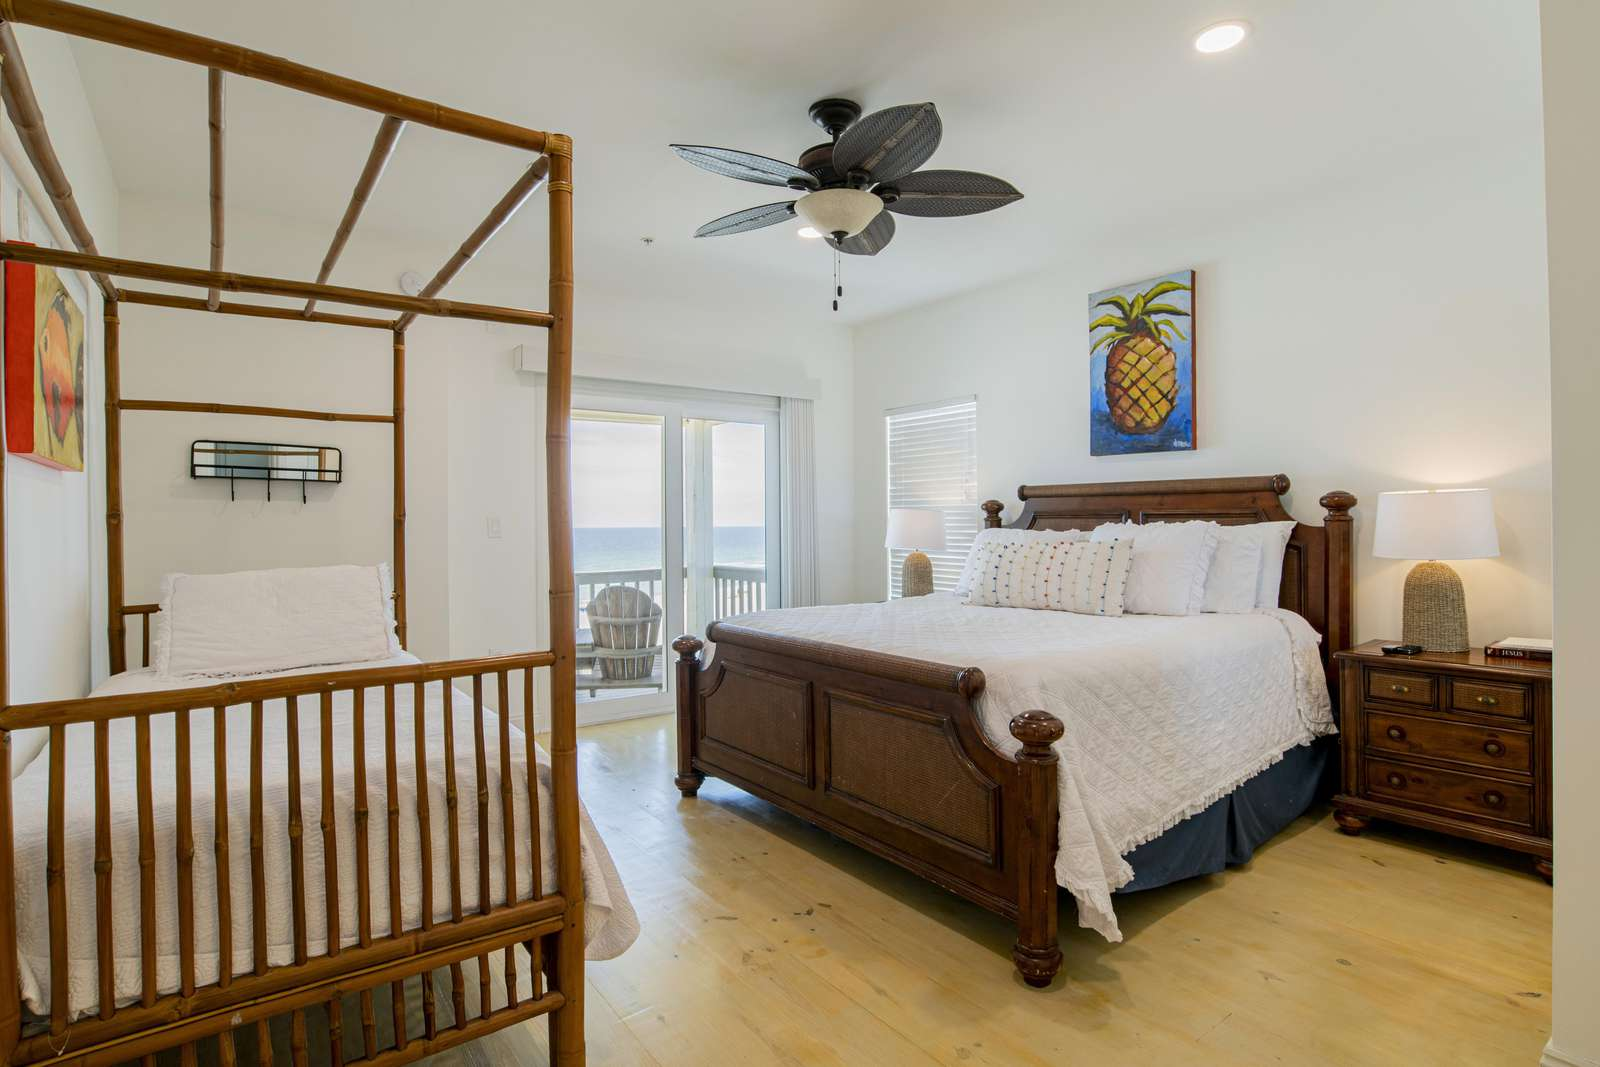 1 of 4 gulf front master bedrooms with private gulf front balcony